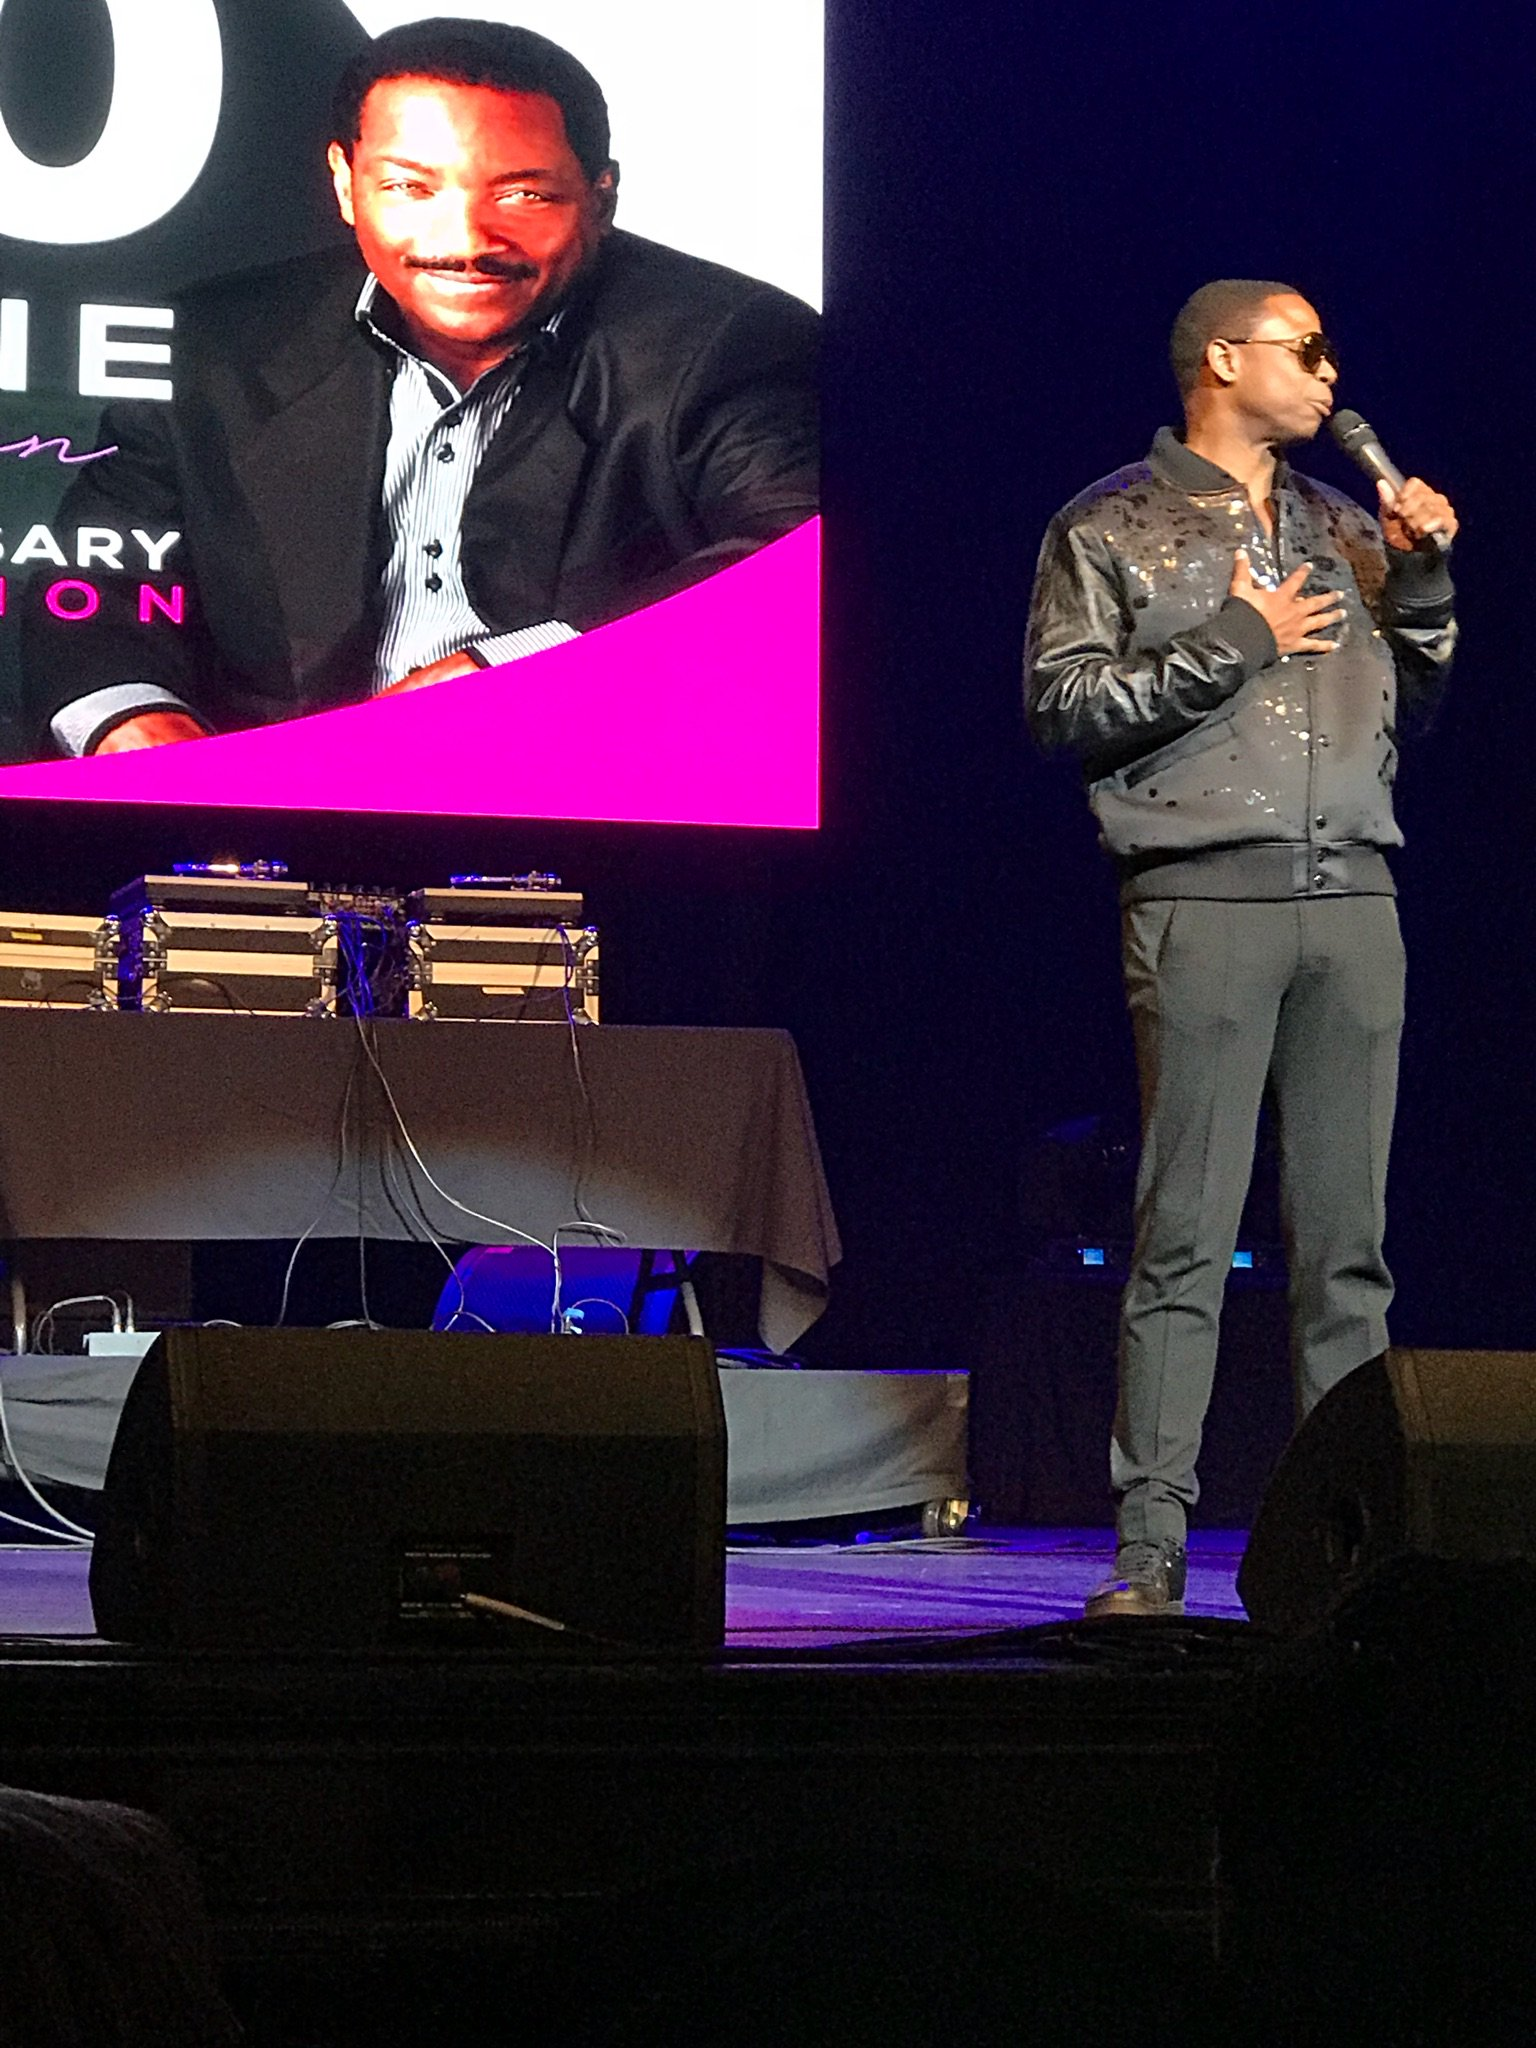 Rapper Doug E Fresh performs at the Donnie Simpson 40 year anniversary celebration, Sunday, Oct. 22, 2017 (Julie Wright/ABC7){&amp;nbsp;}<p></p>